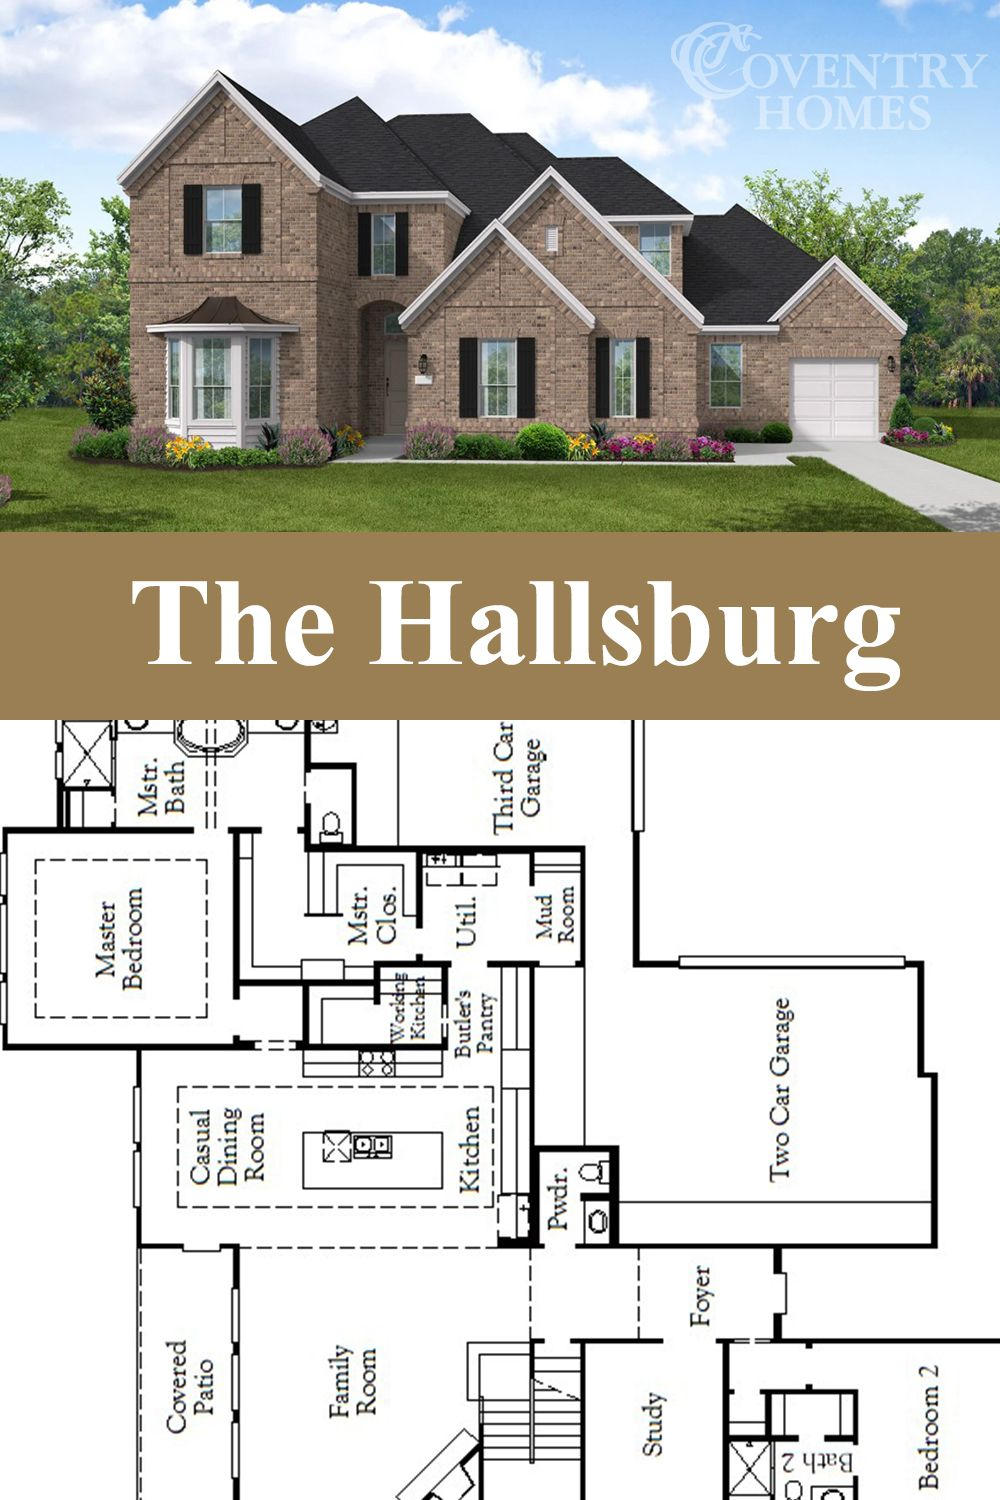 New Home Plans Floor Plan Designs New House Plans Floor Plan Design Floor Plans